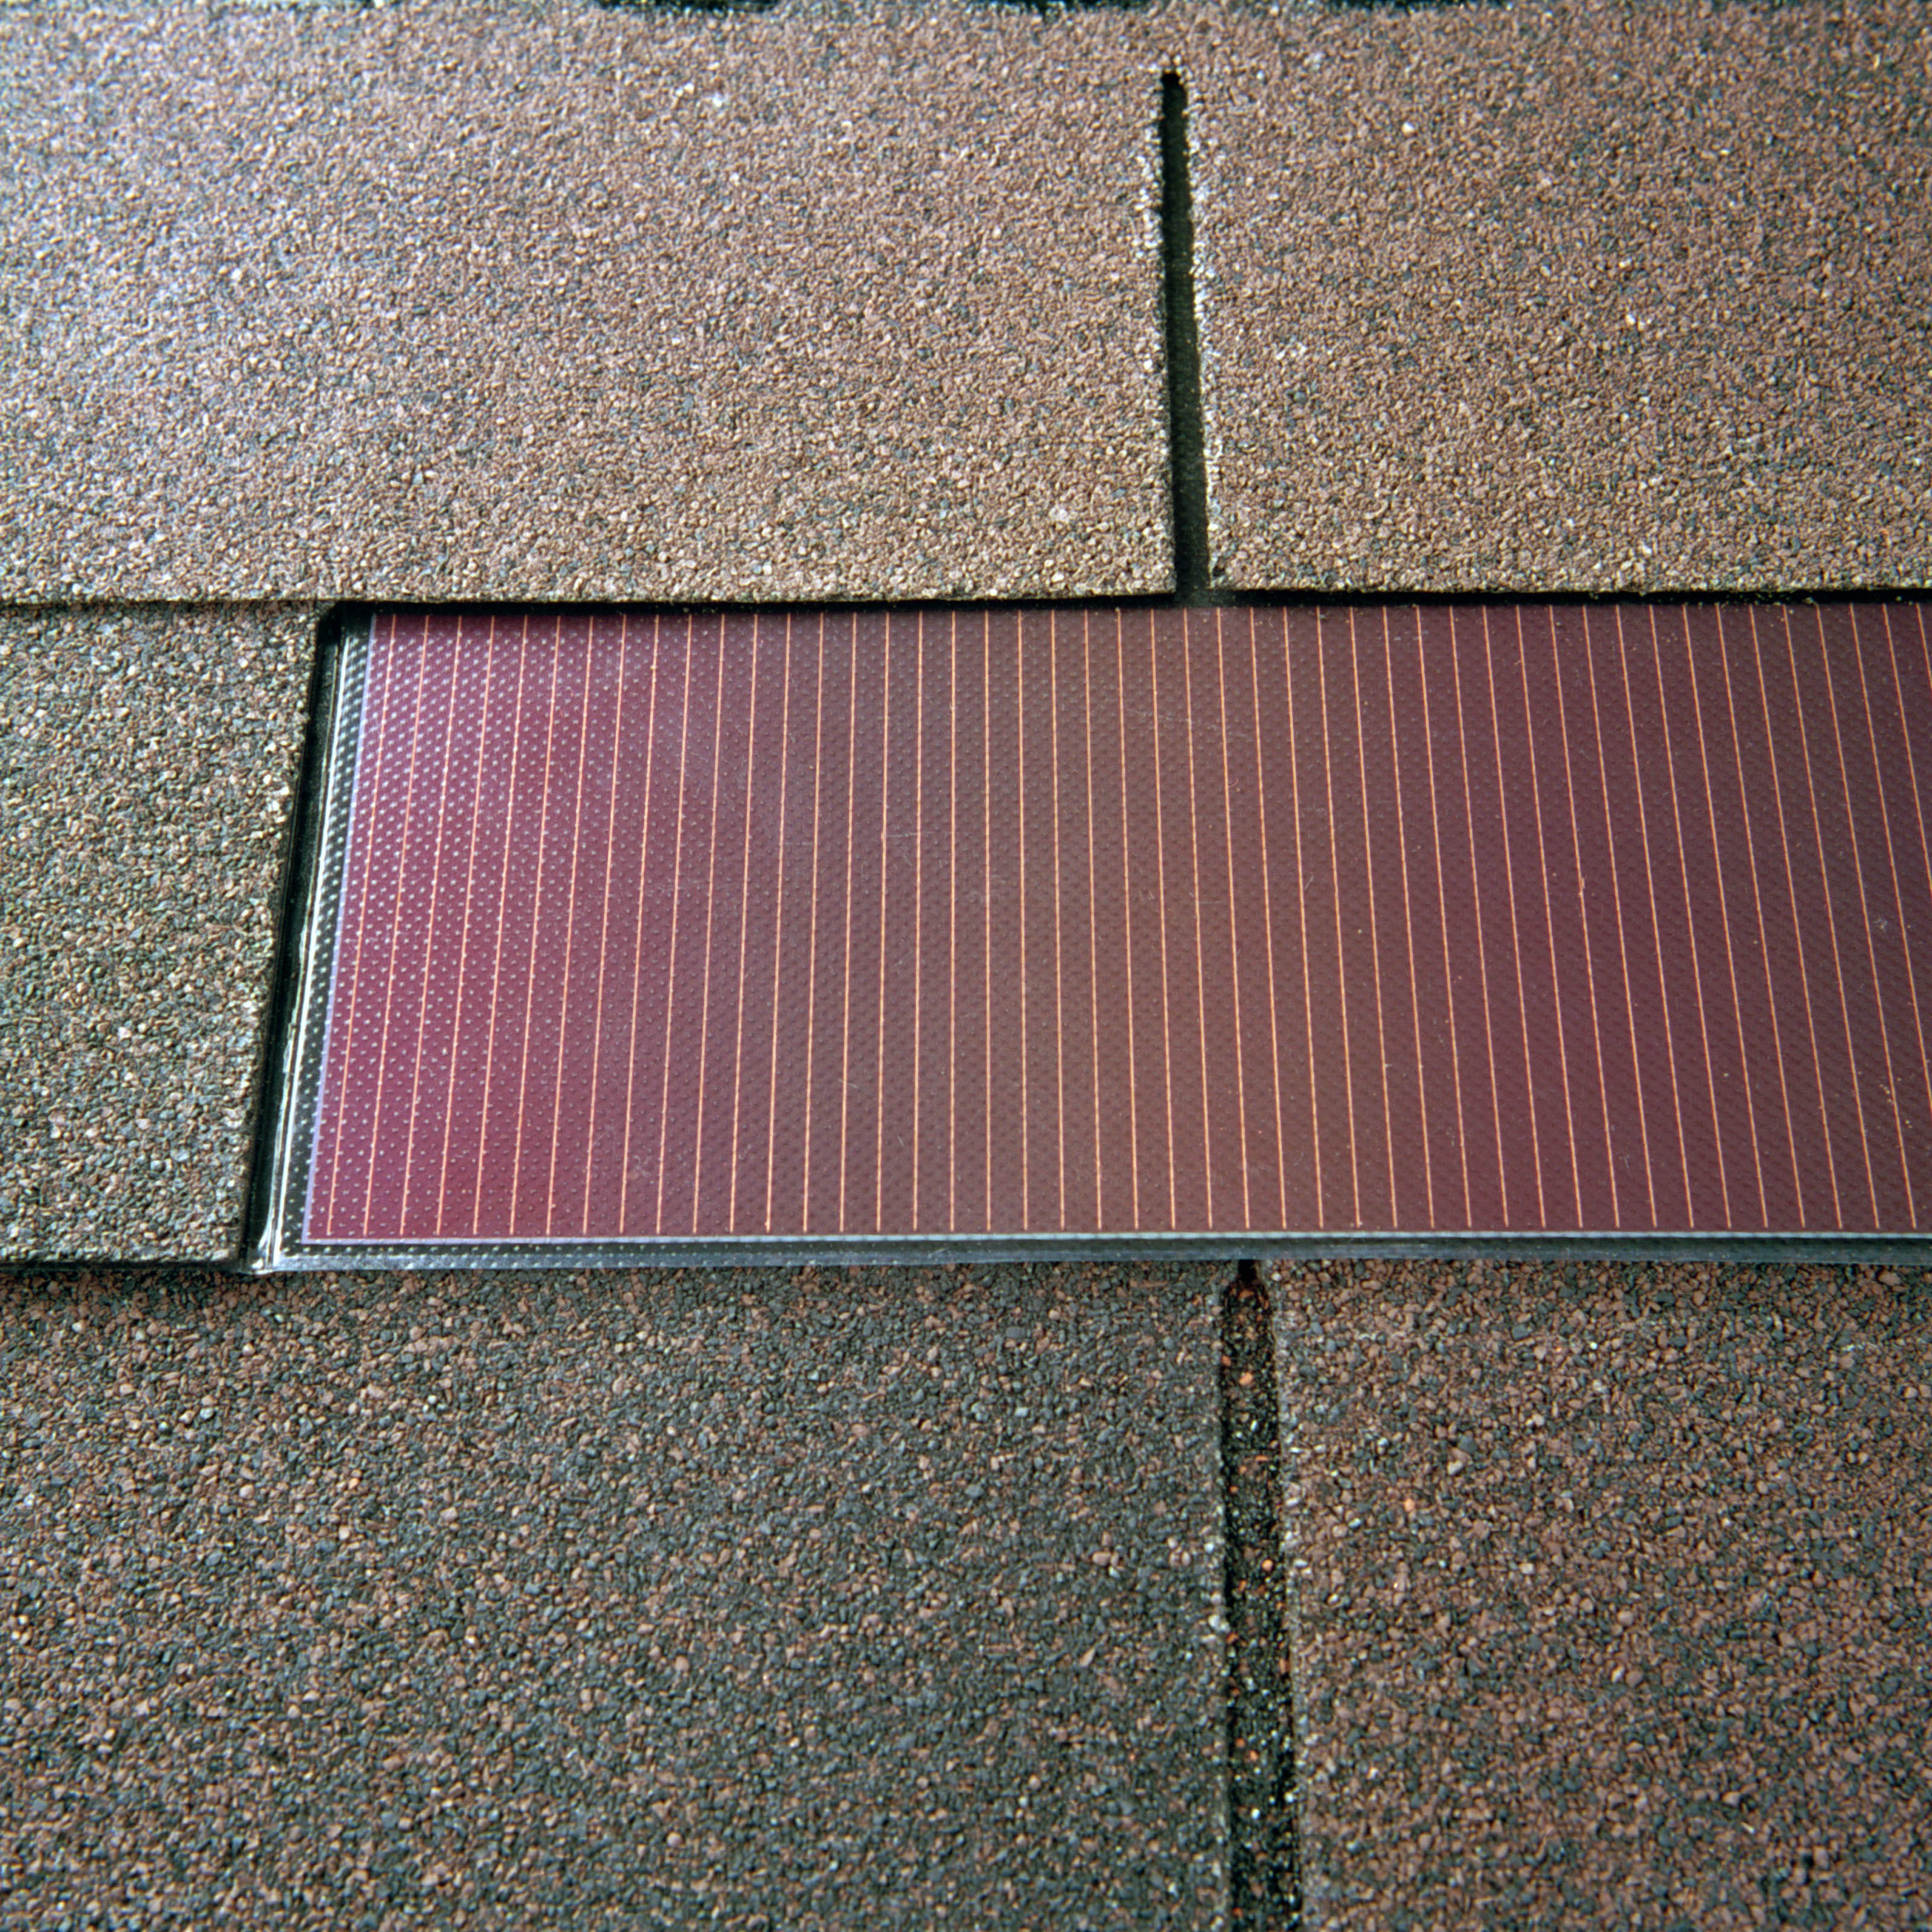 Light, Flexible PV Roofing Shingles For Direct Building Integrated Mounting  Can